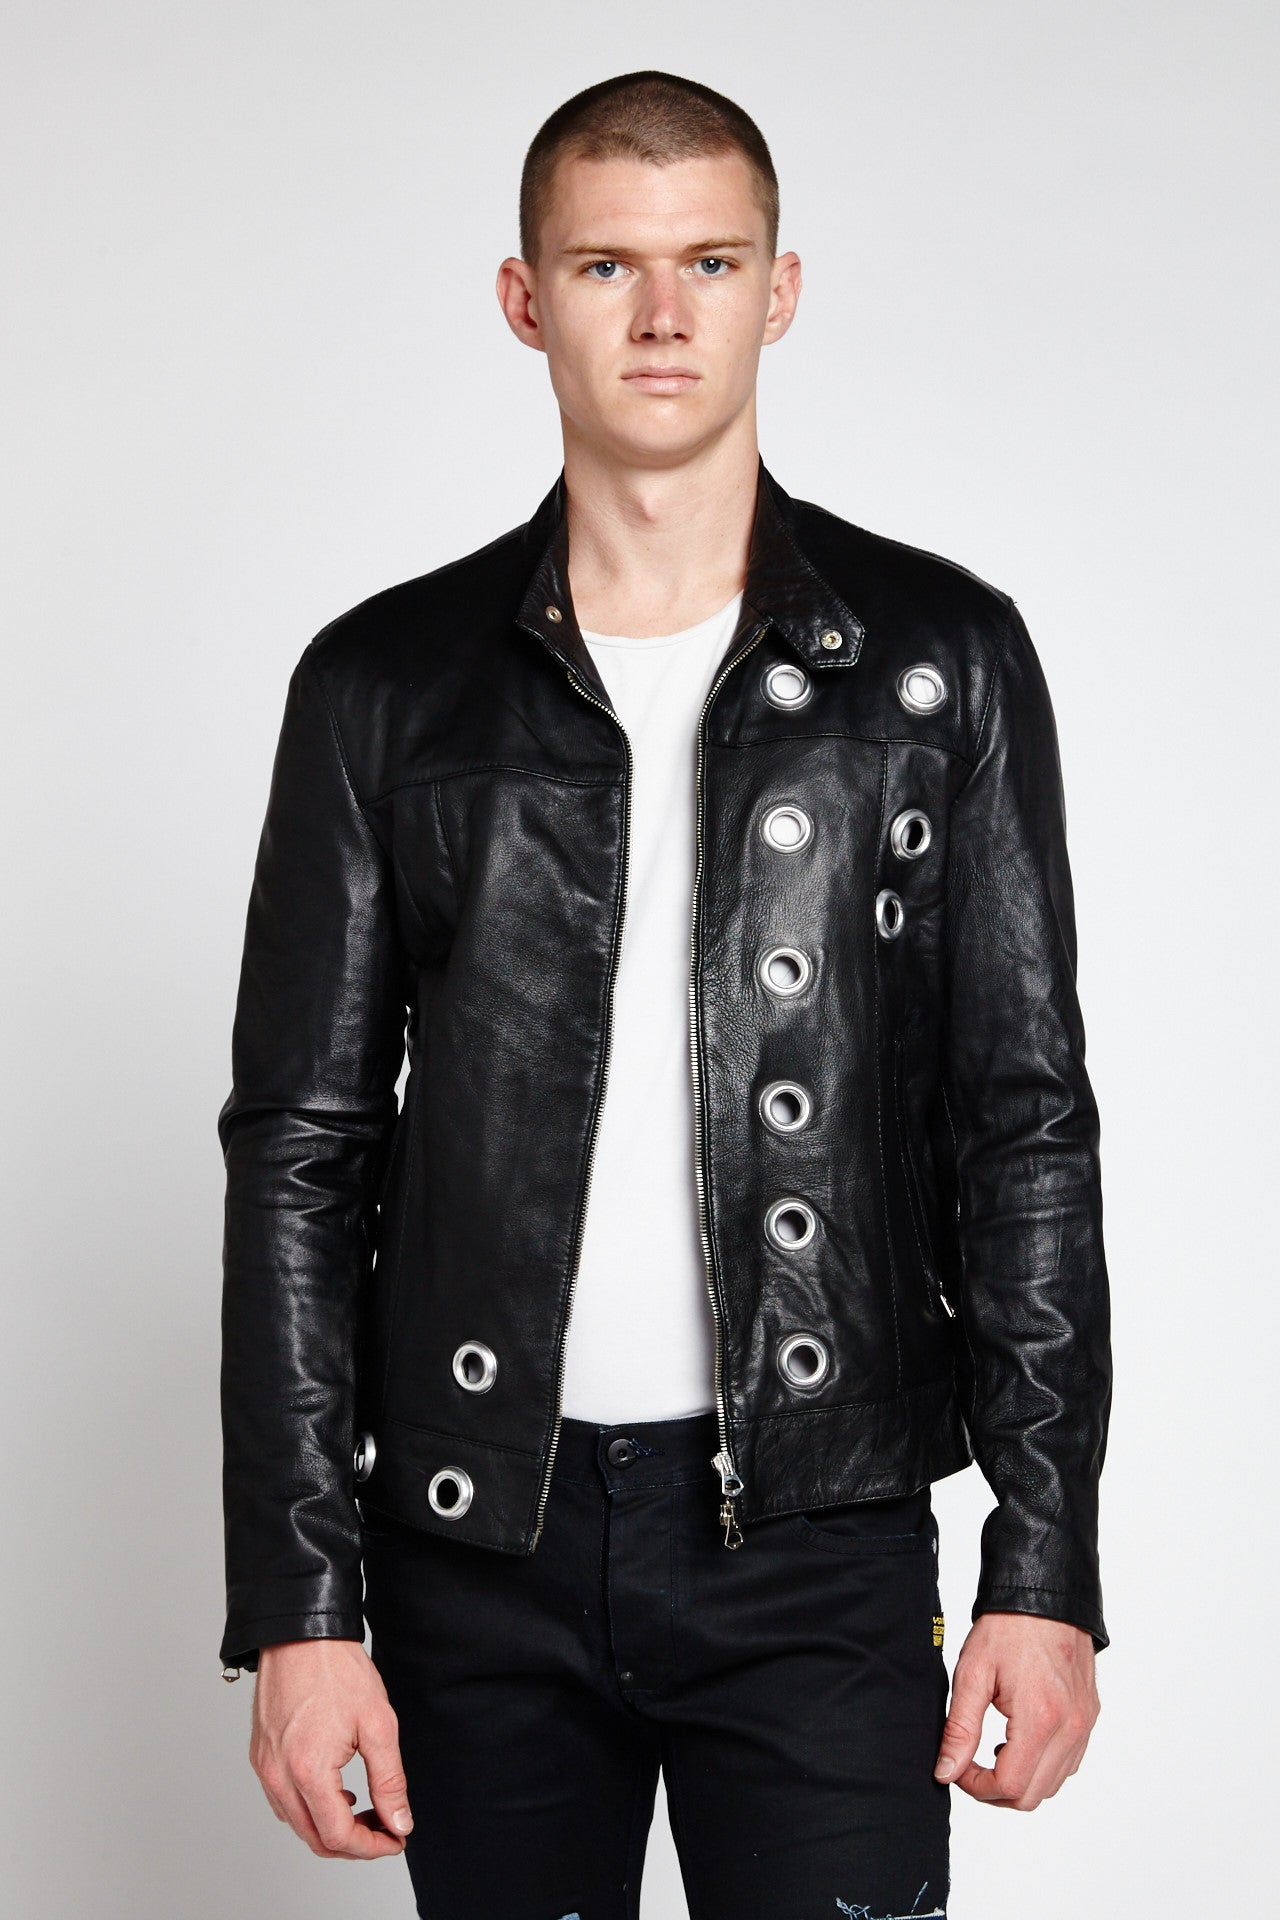 BORCHIA BLACK LEATHER RACER EYELET BIKER JACKET-JACKETS-Mundane Official-L-Mundane Official